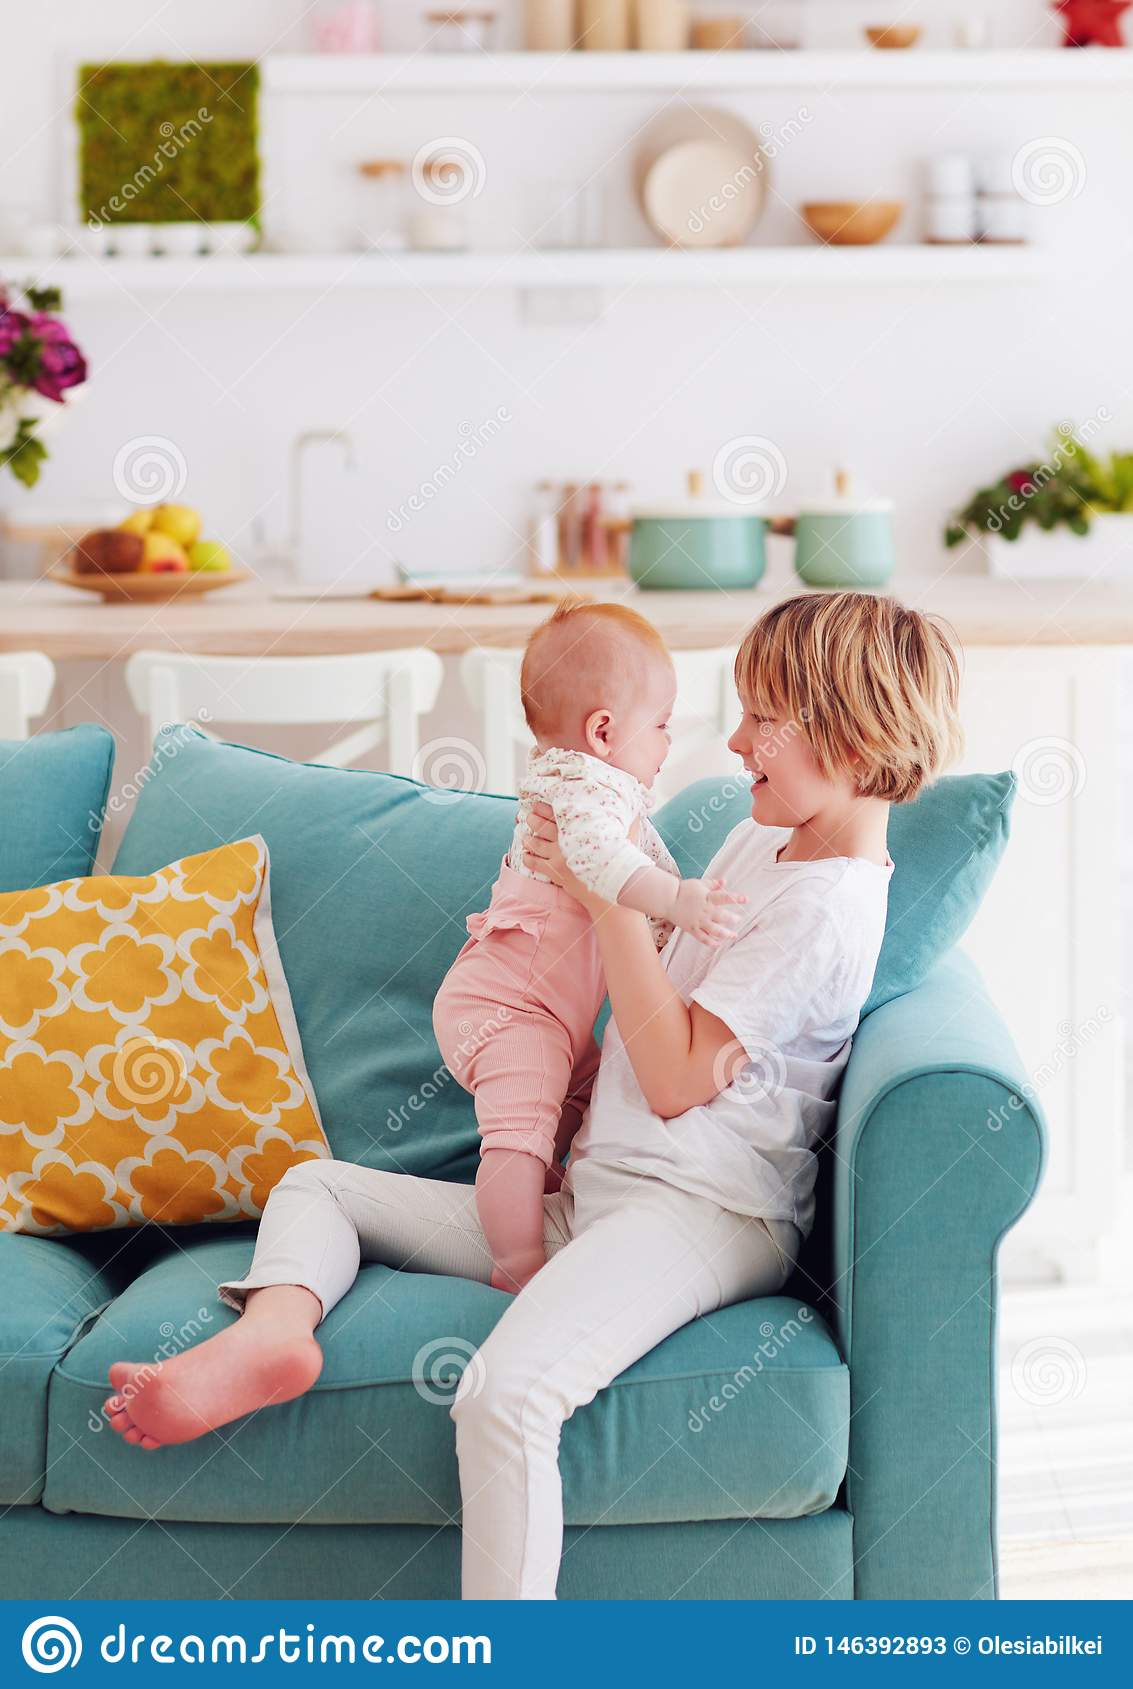 Cute young boy playing with little infant baby sister at home on the couch